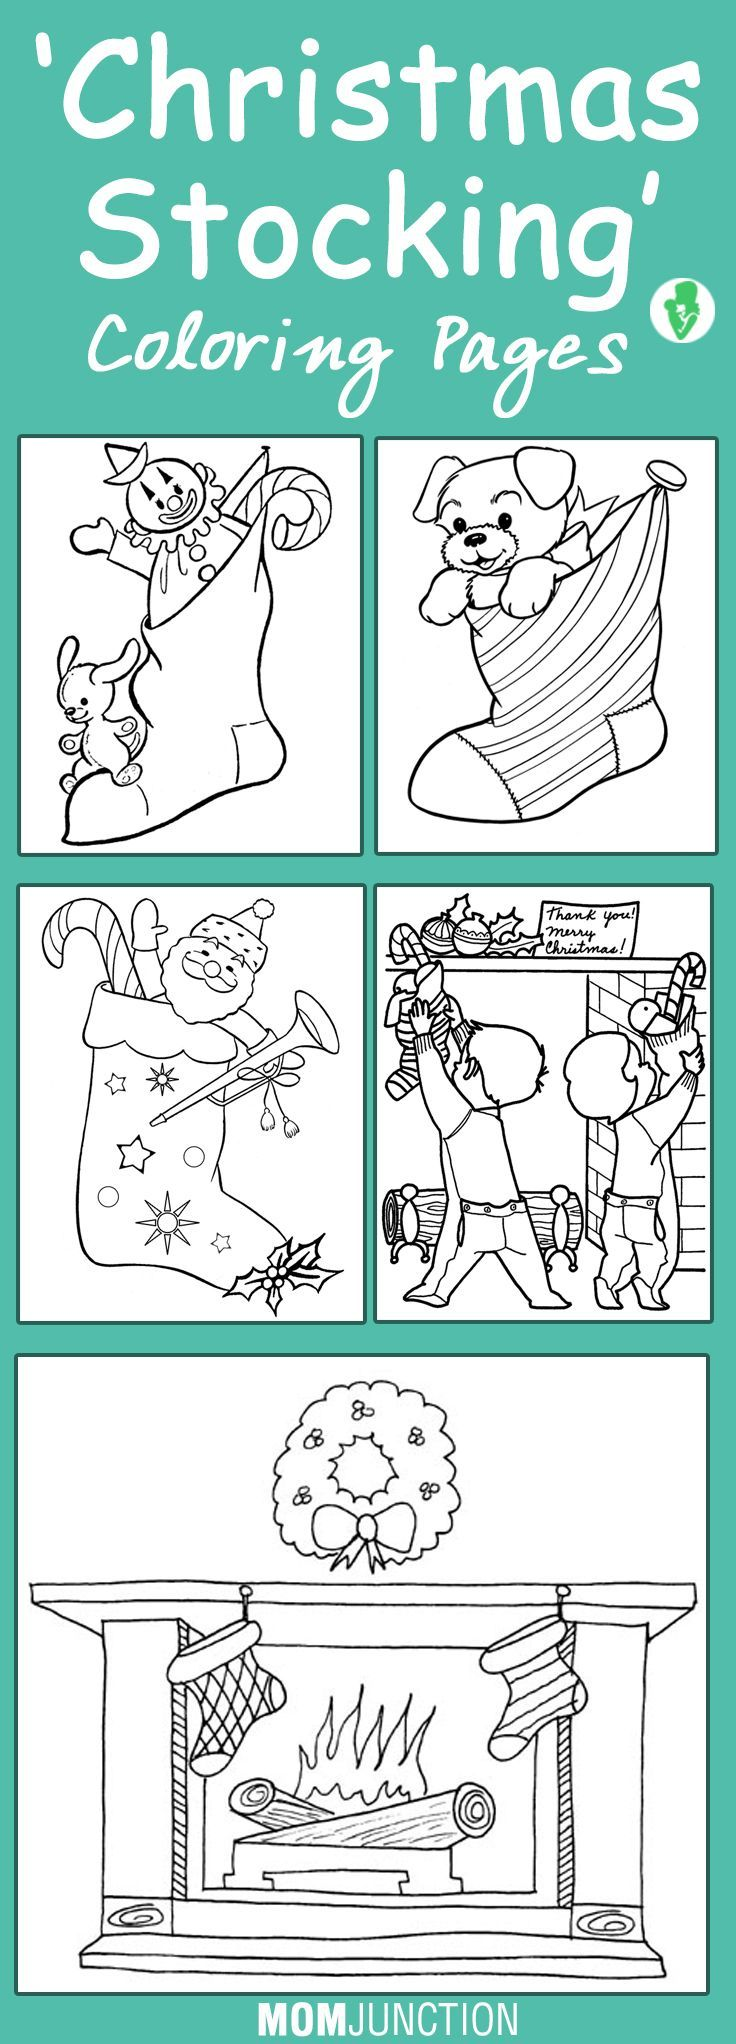 Top 25 Free Printable Christmas Stocking Coloring Pages